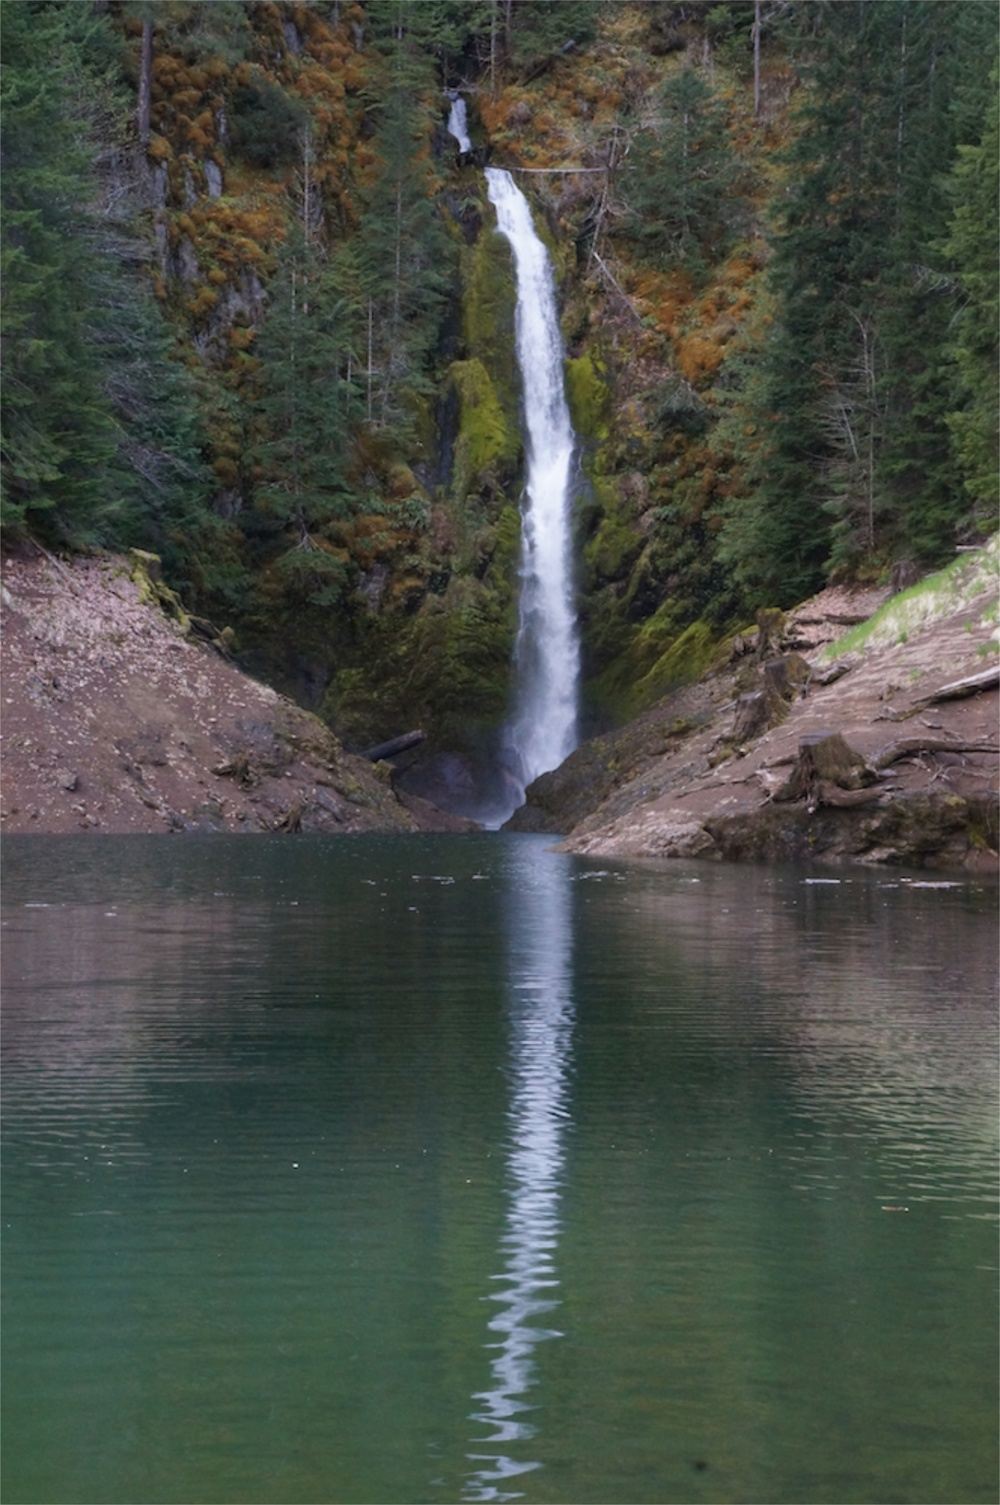 Waterfall at Terwilliger Hot Springs area entrance